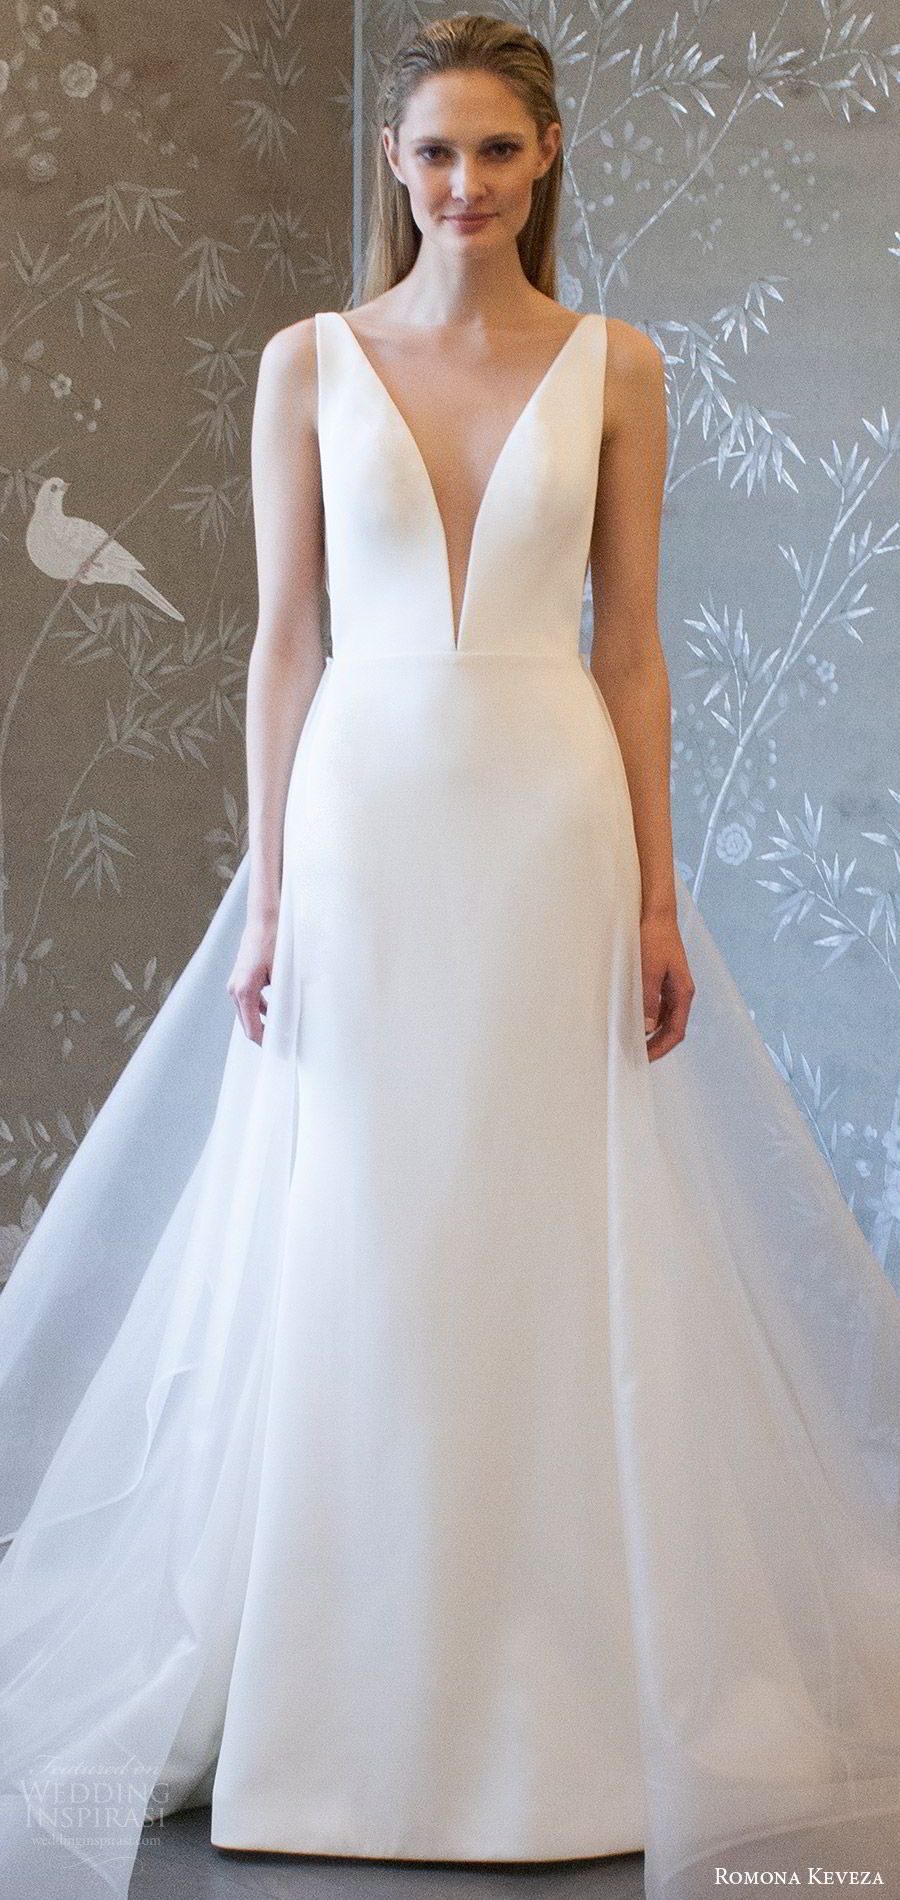 romona keveza spring 2018 bridal sleeveless deep v neck a line trumpet wedding dress (rk8400) mv detachable overskirt modern